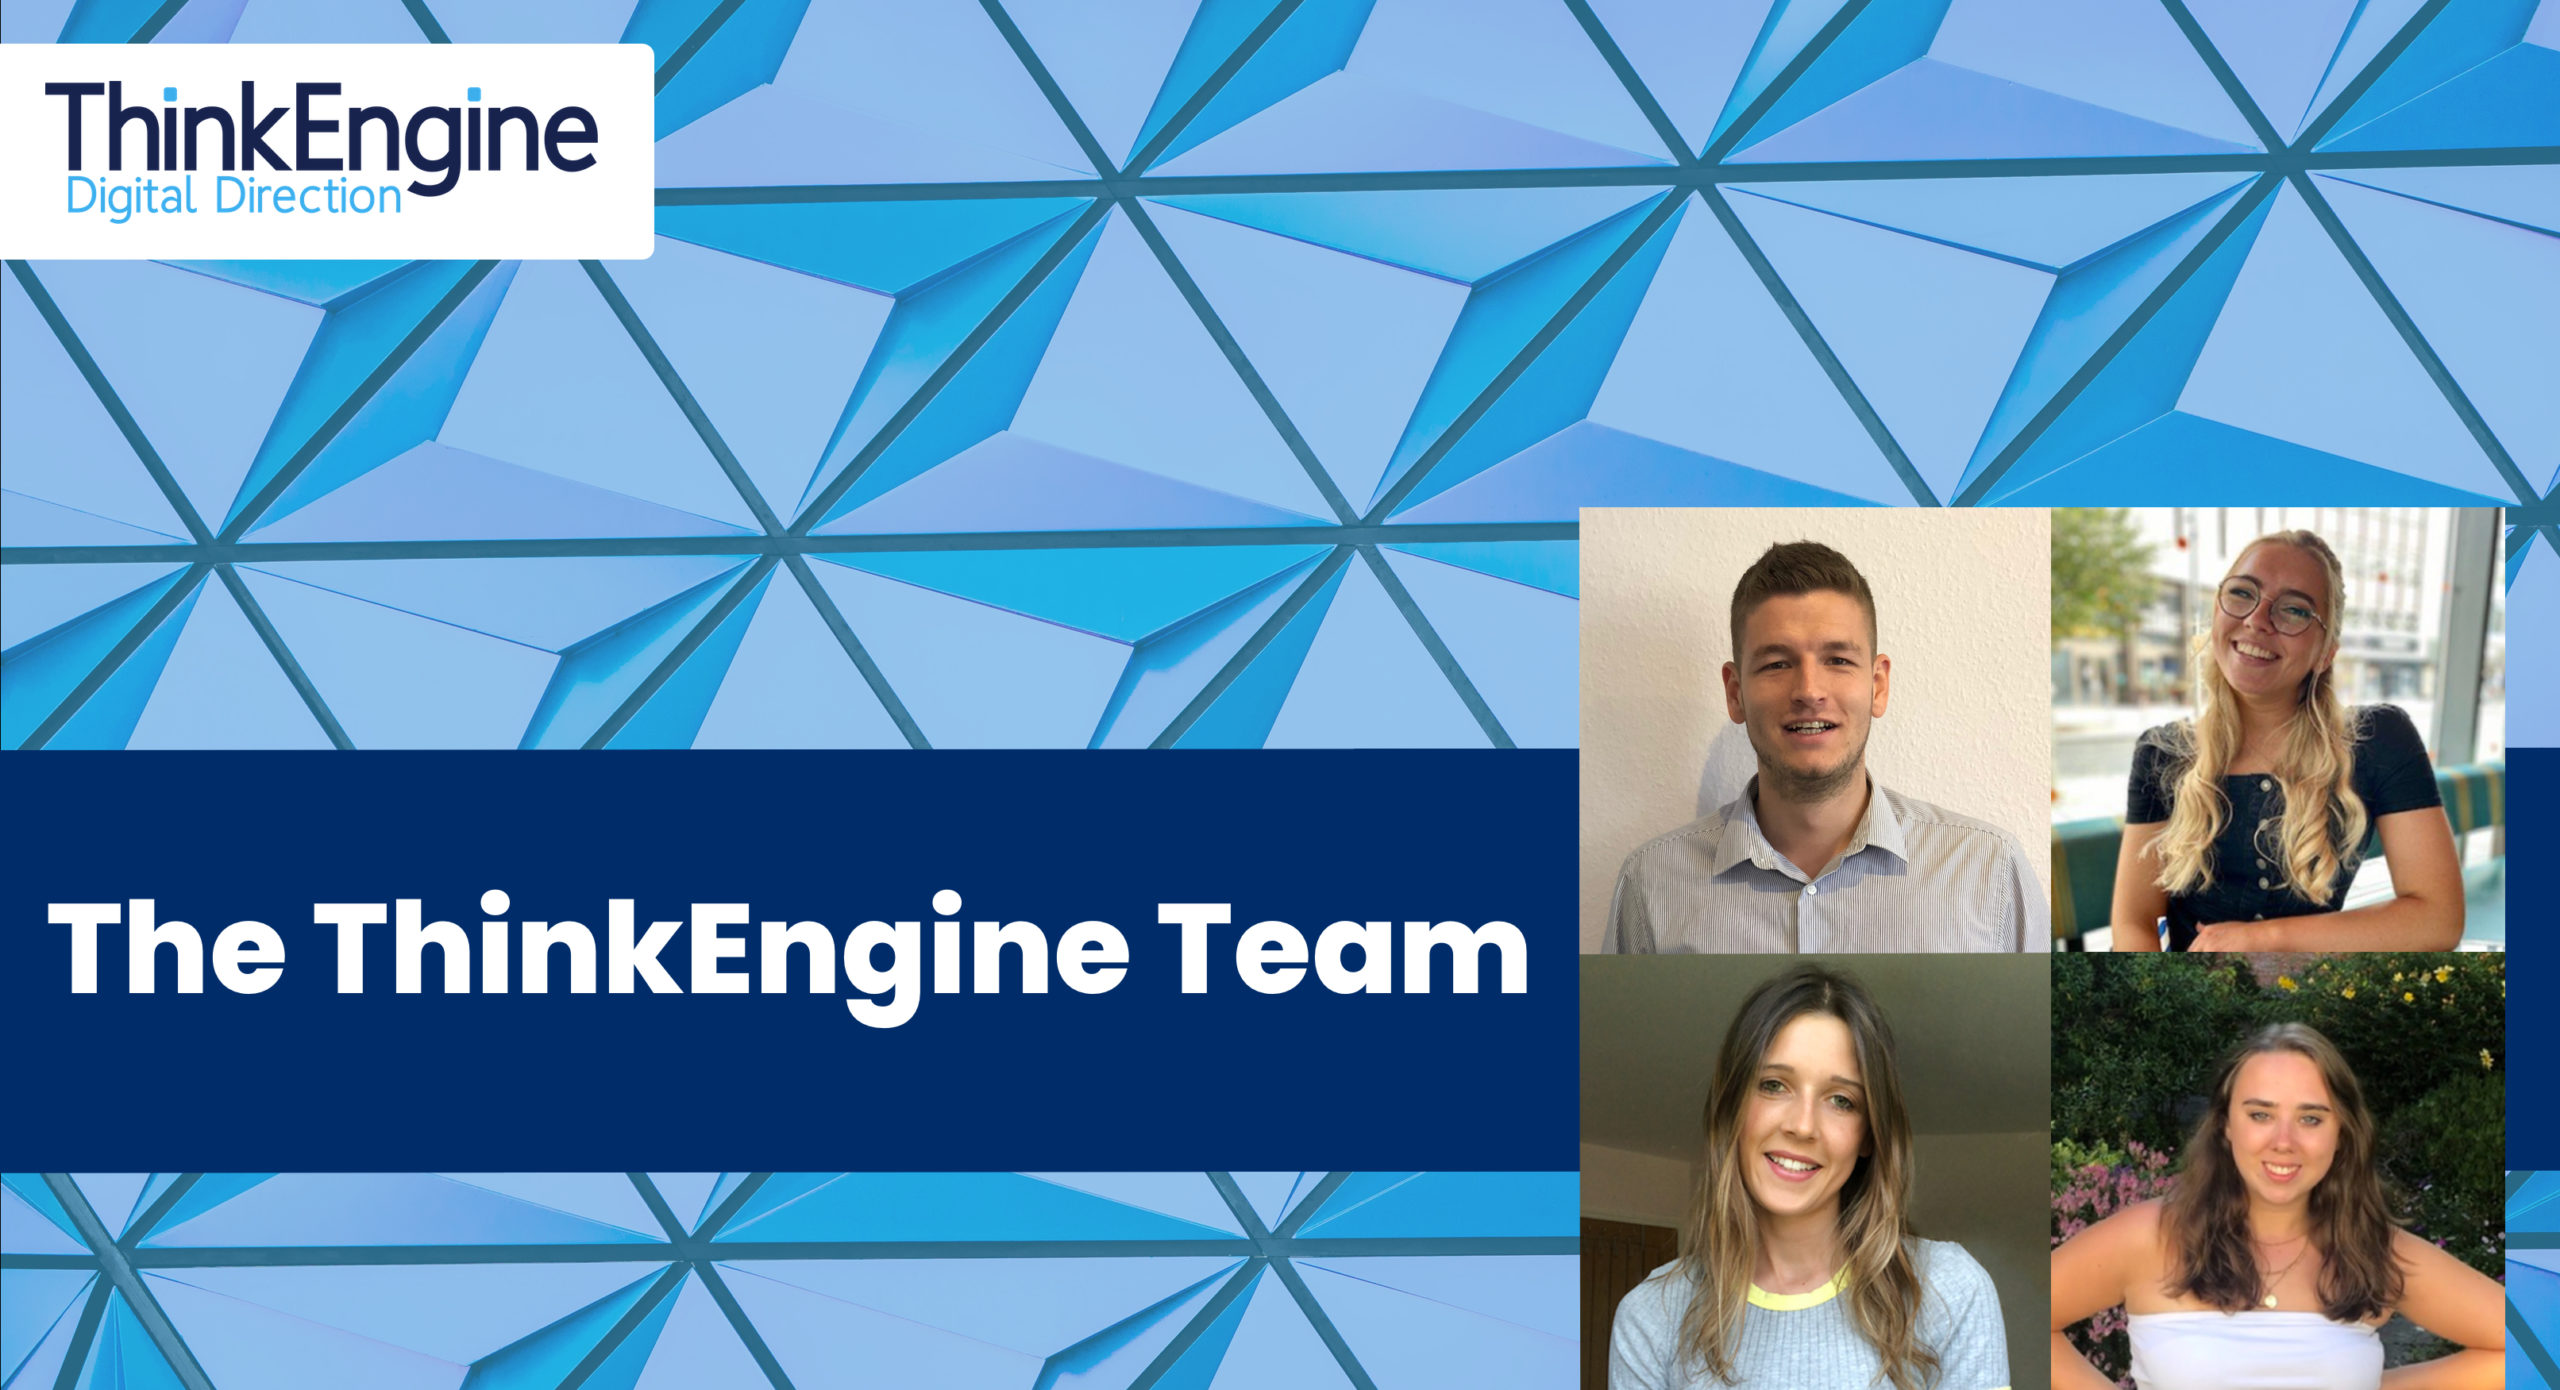 ThinkEngine Team Photo